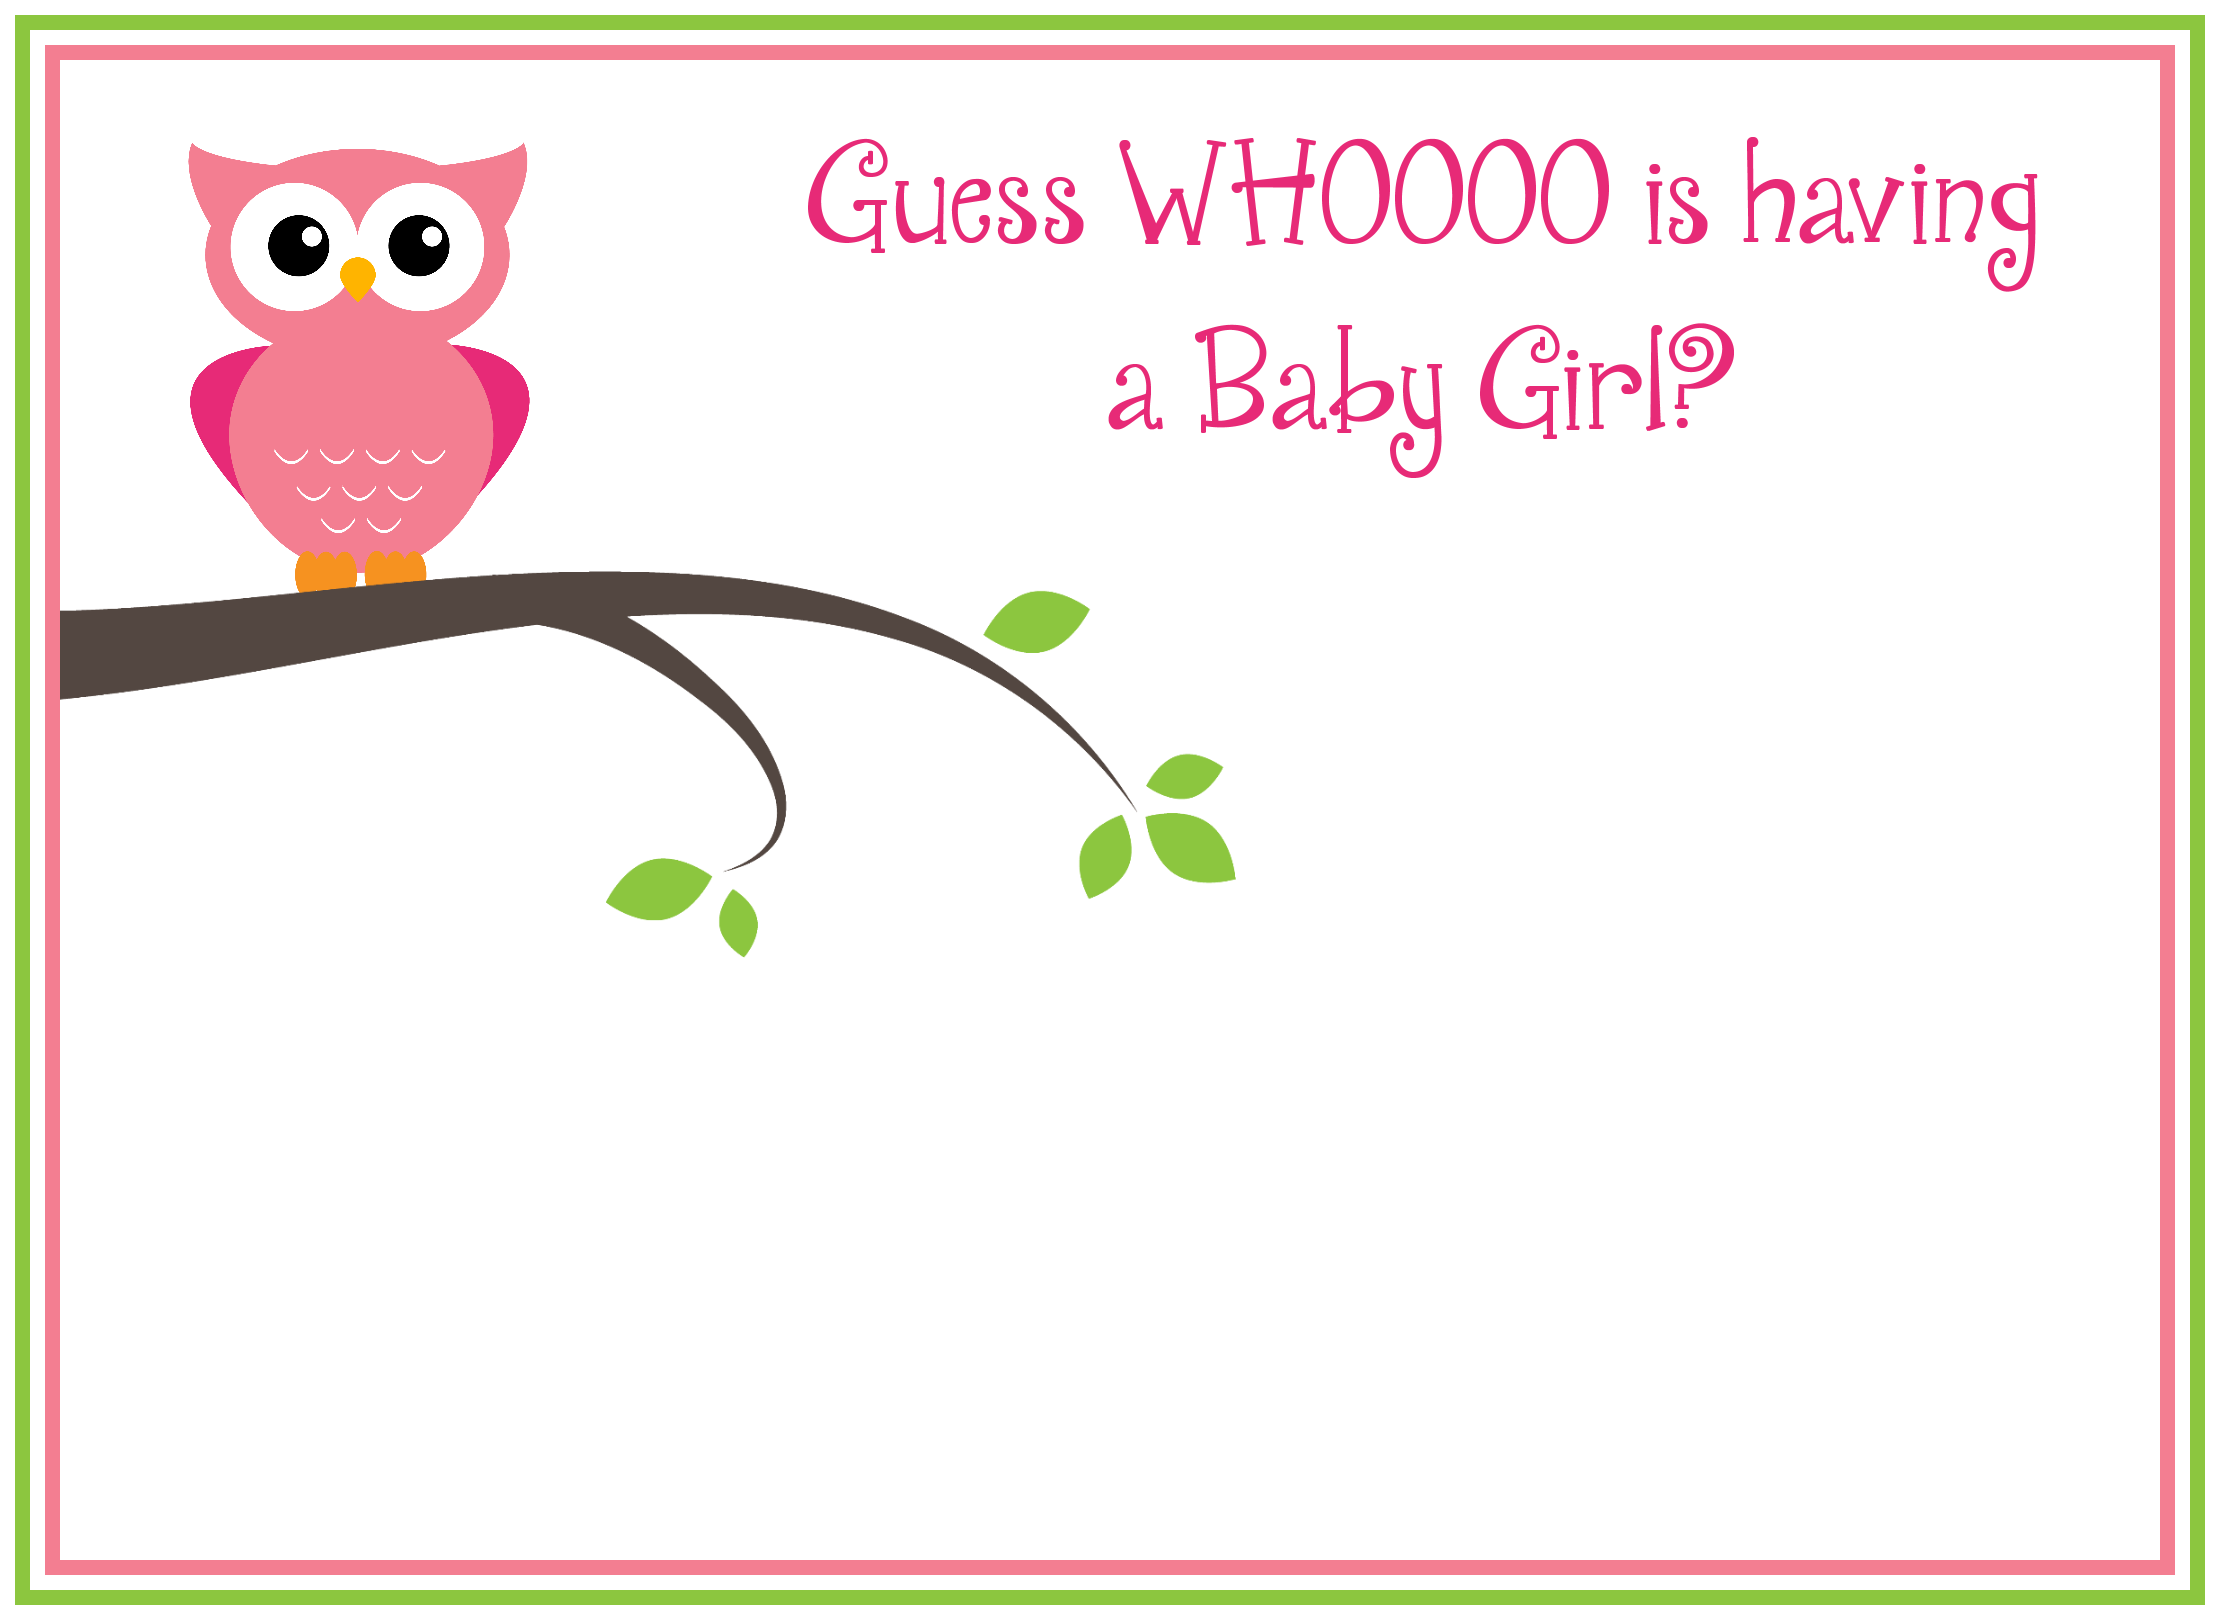 photograph relating to Printable Girl Baby Shower Invitations titled No cost Printable Females Owl Little one Shower Invites - Outrageous